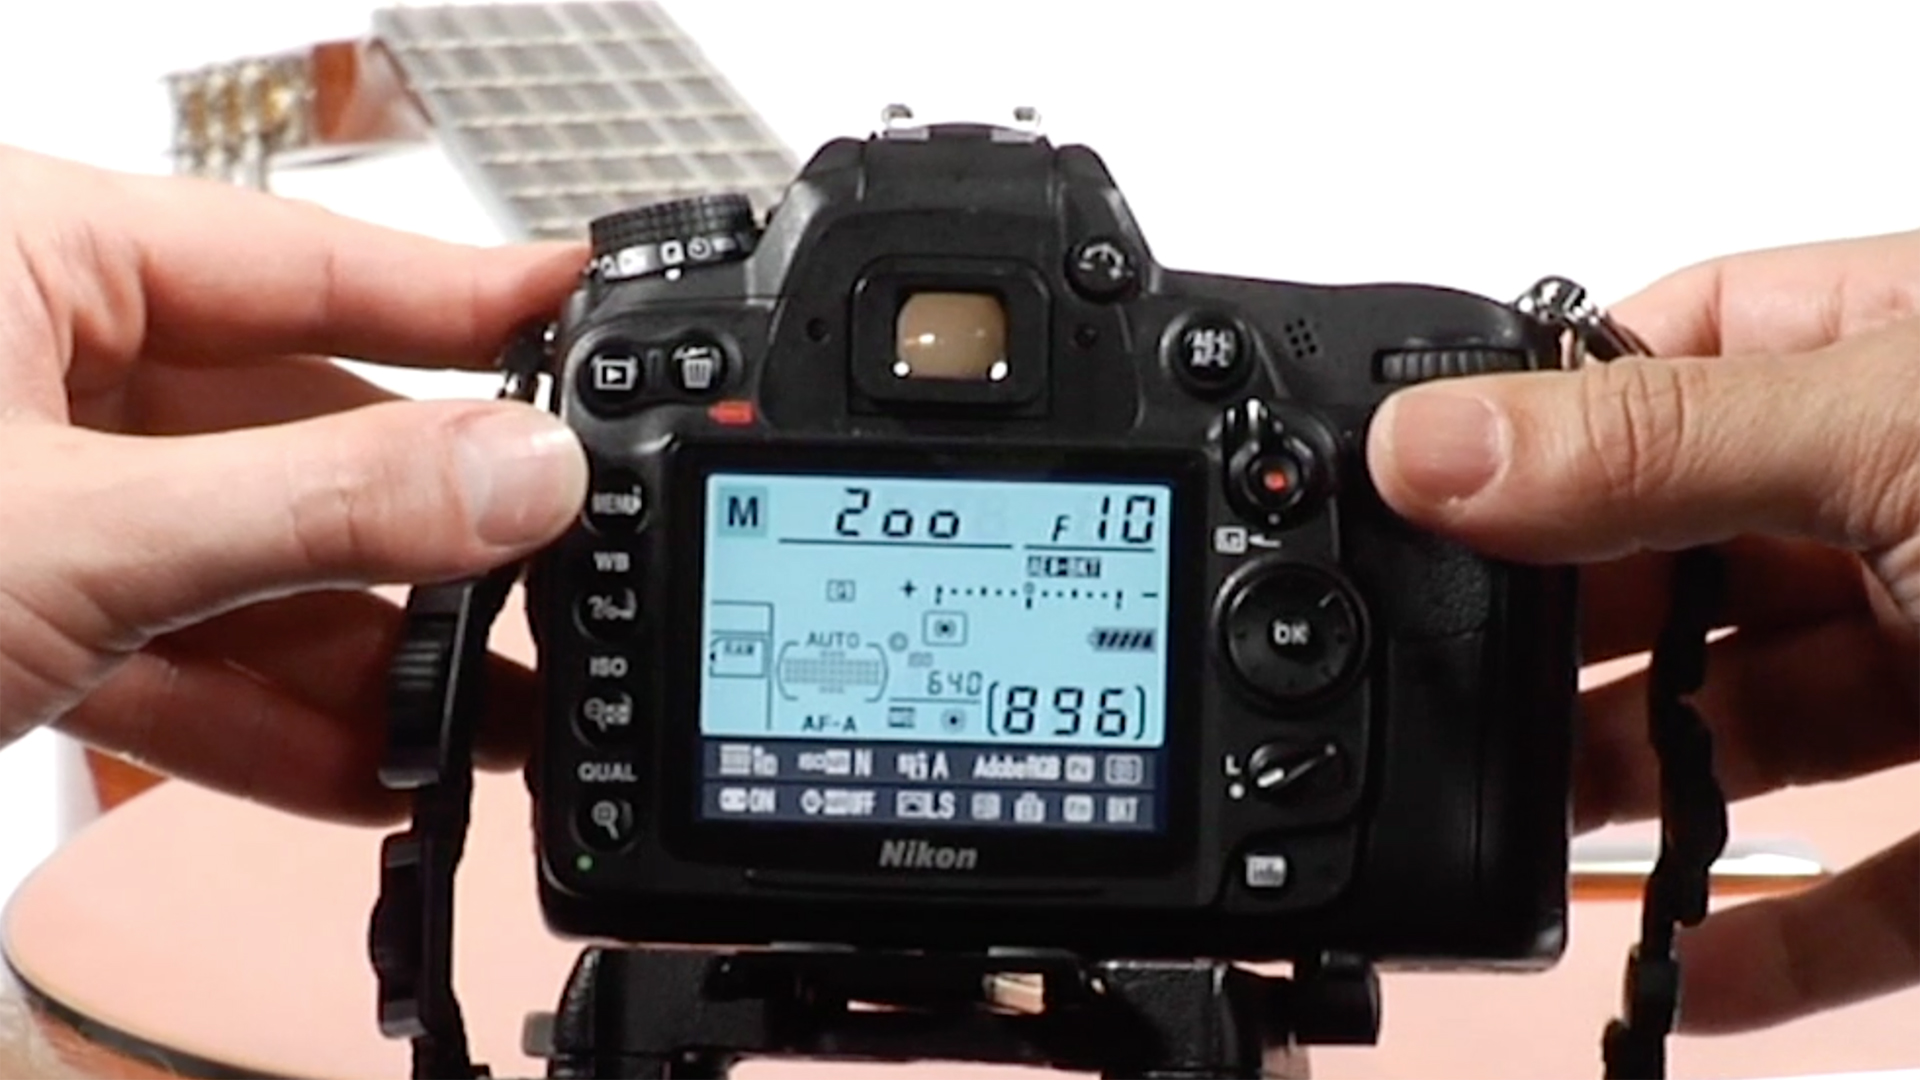 Dslr Video Tips Technical Knowledge ✓ free for commercial use ✓ high quality images. dslr video tips technical knowledge